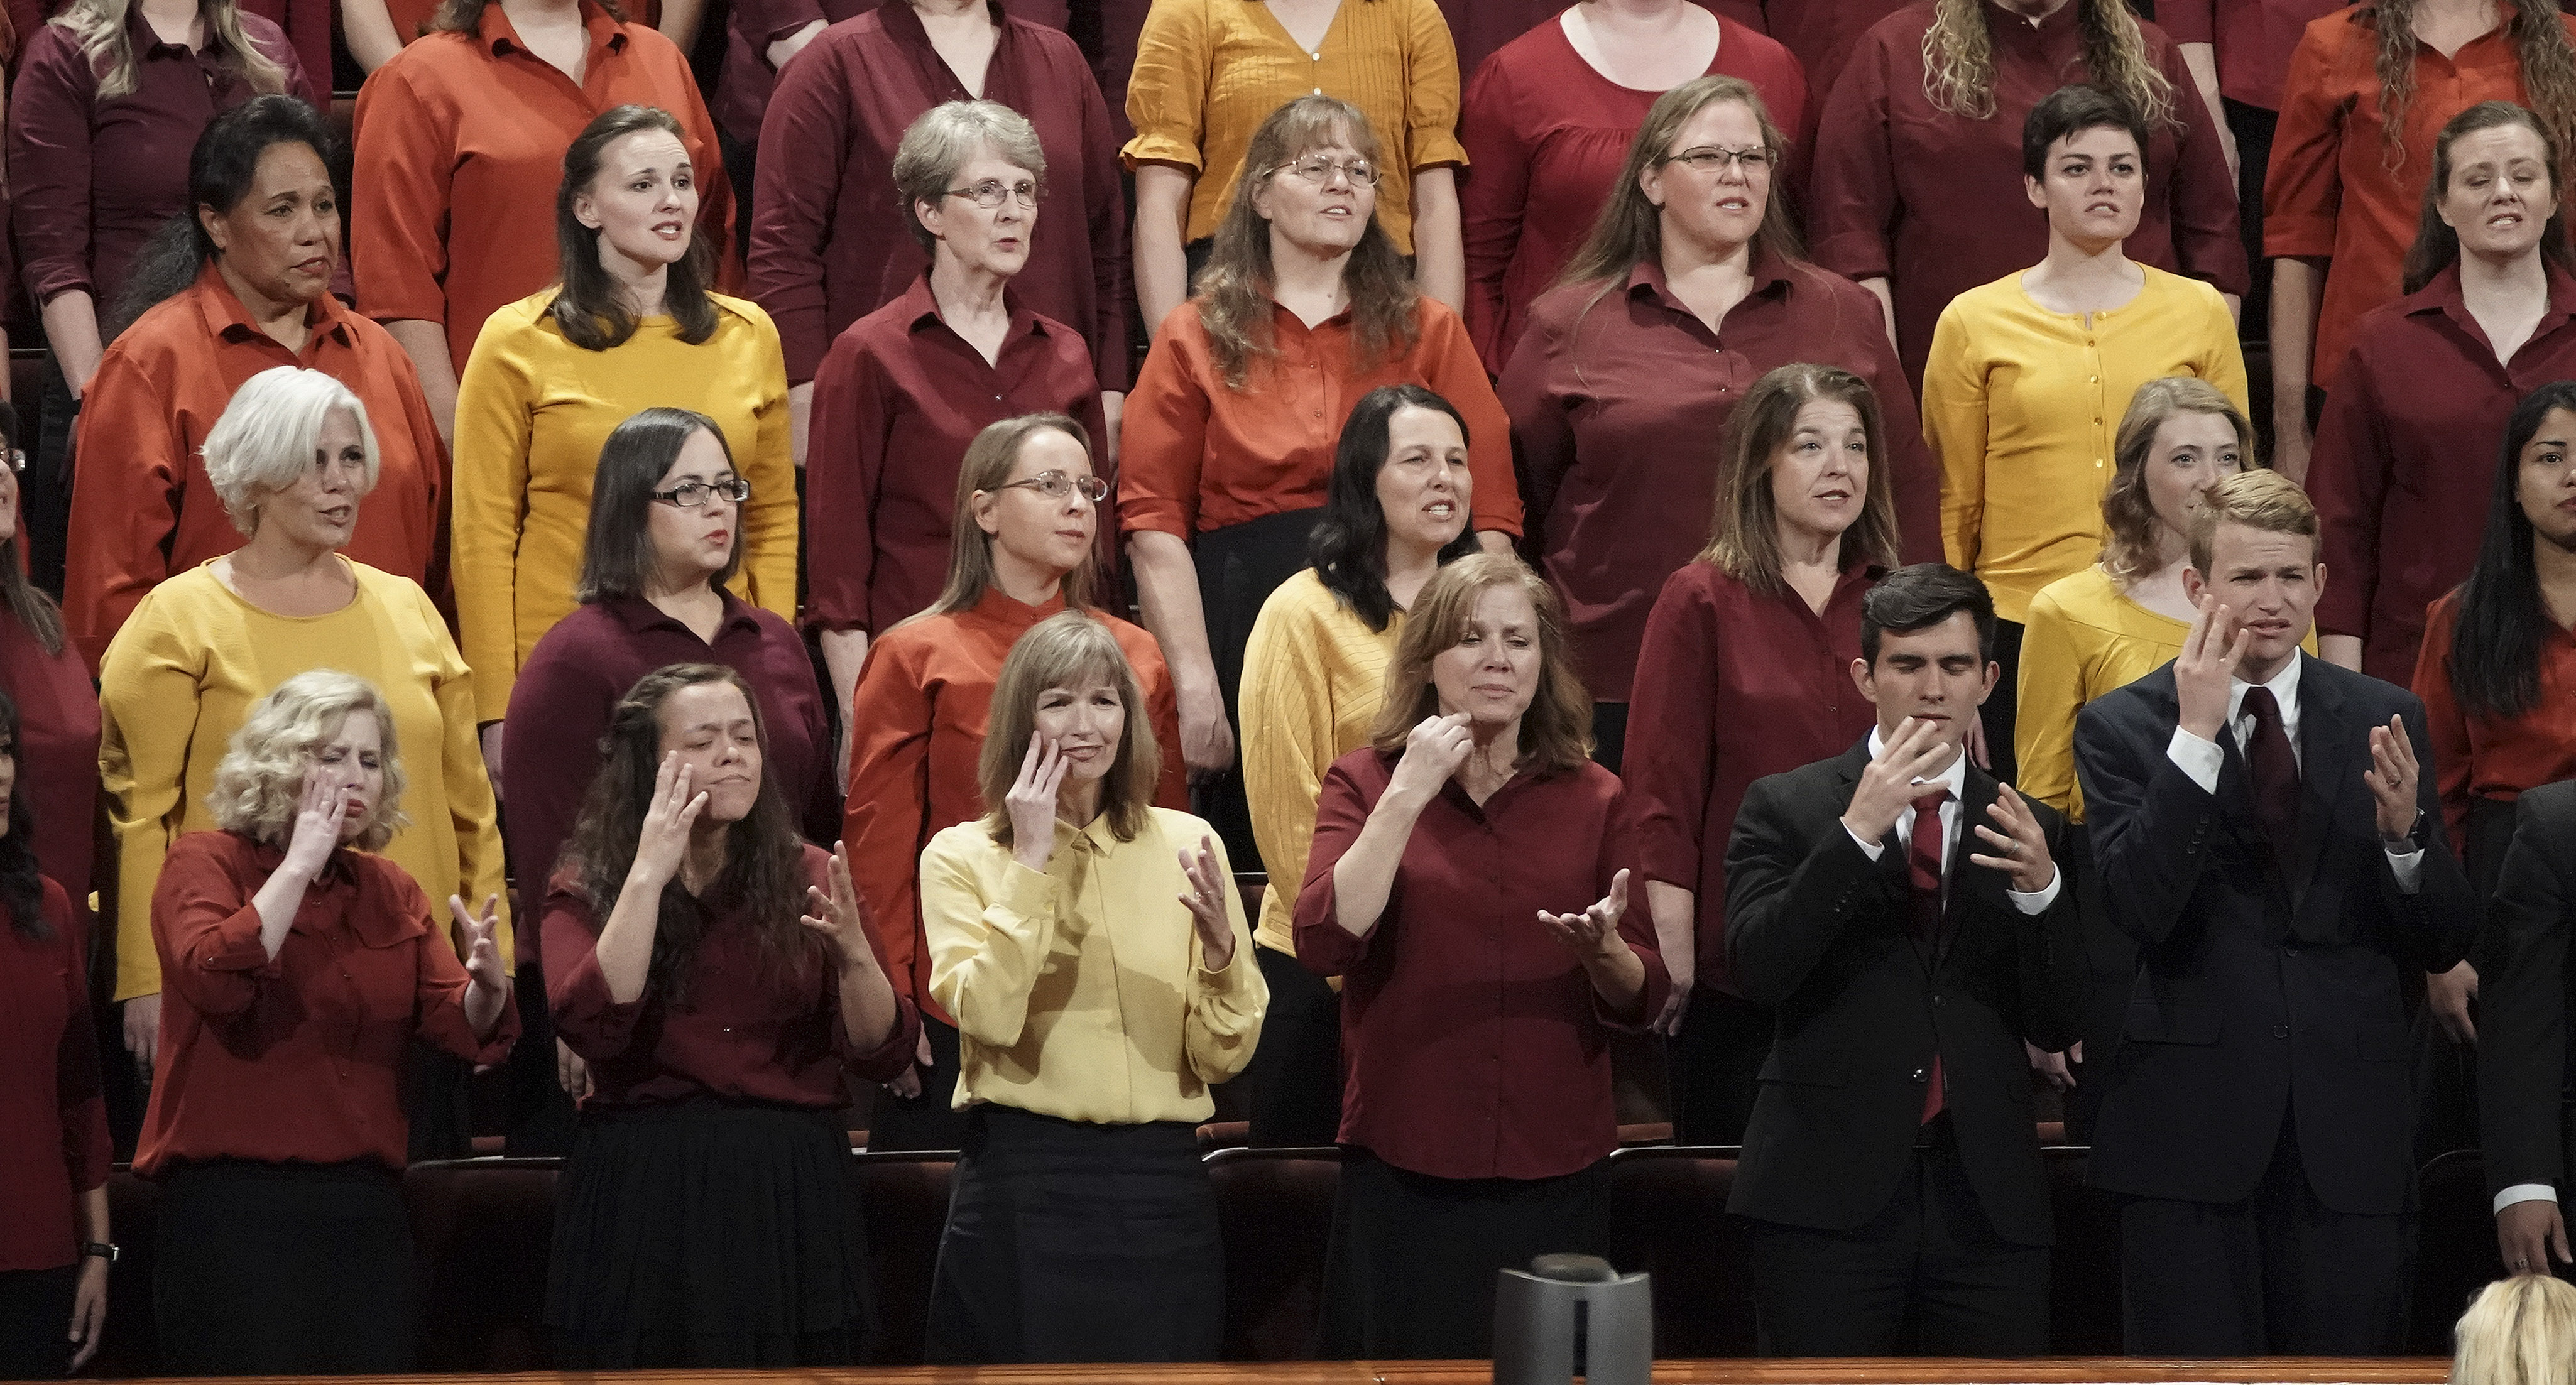 A combined choir and signers from Provo, Utah, sing during the Saturday afternoon session of the 189th Semiannual General Conference of The Church of Jesus Christ of Latter-day Saints in the Conference Center in Salt Lake City on Saturday, Oct. 5, 2019.